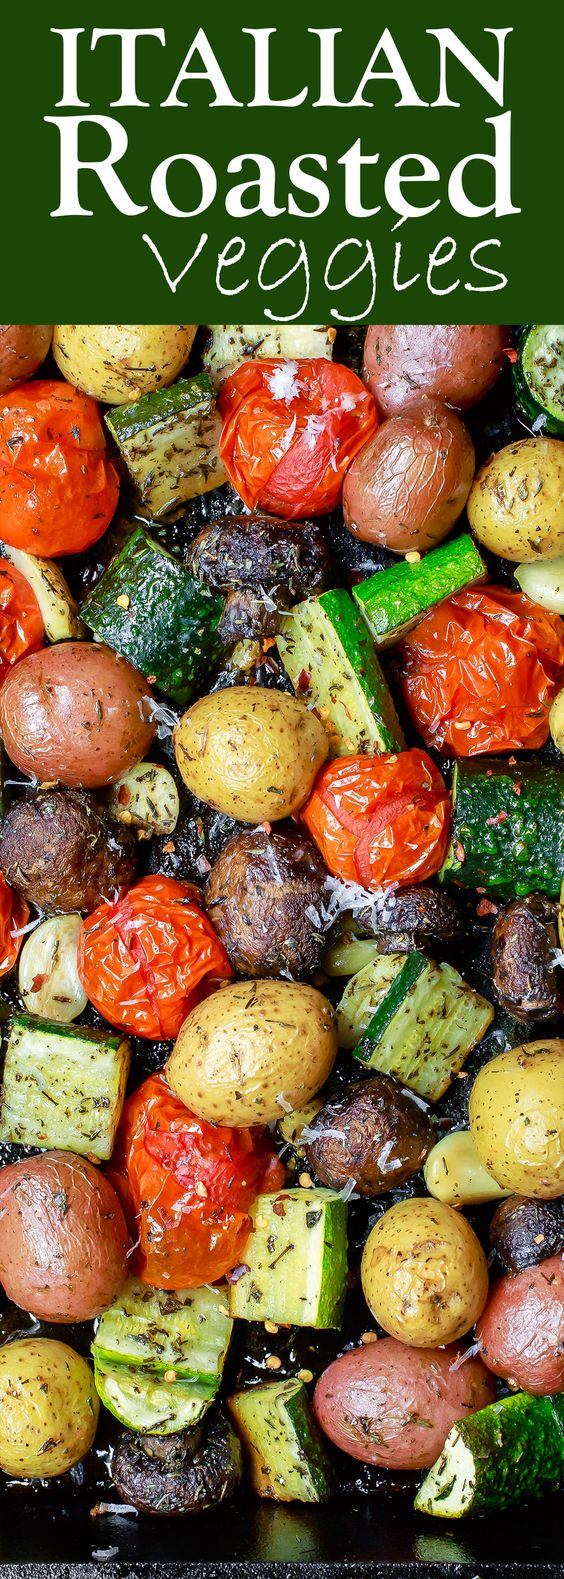 Italian Oven Roasted Vegetables.